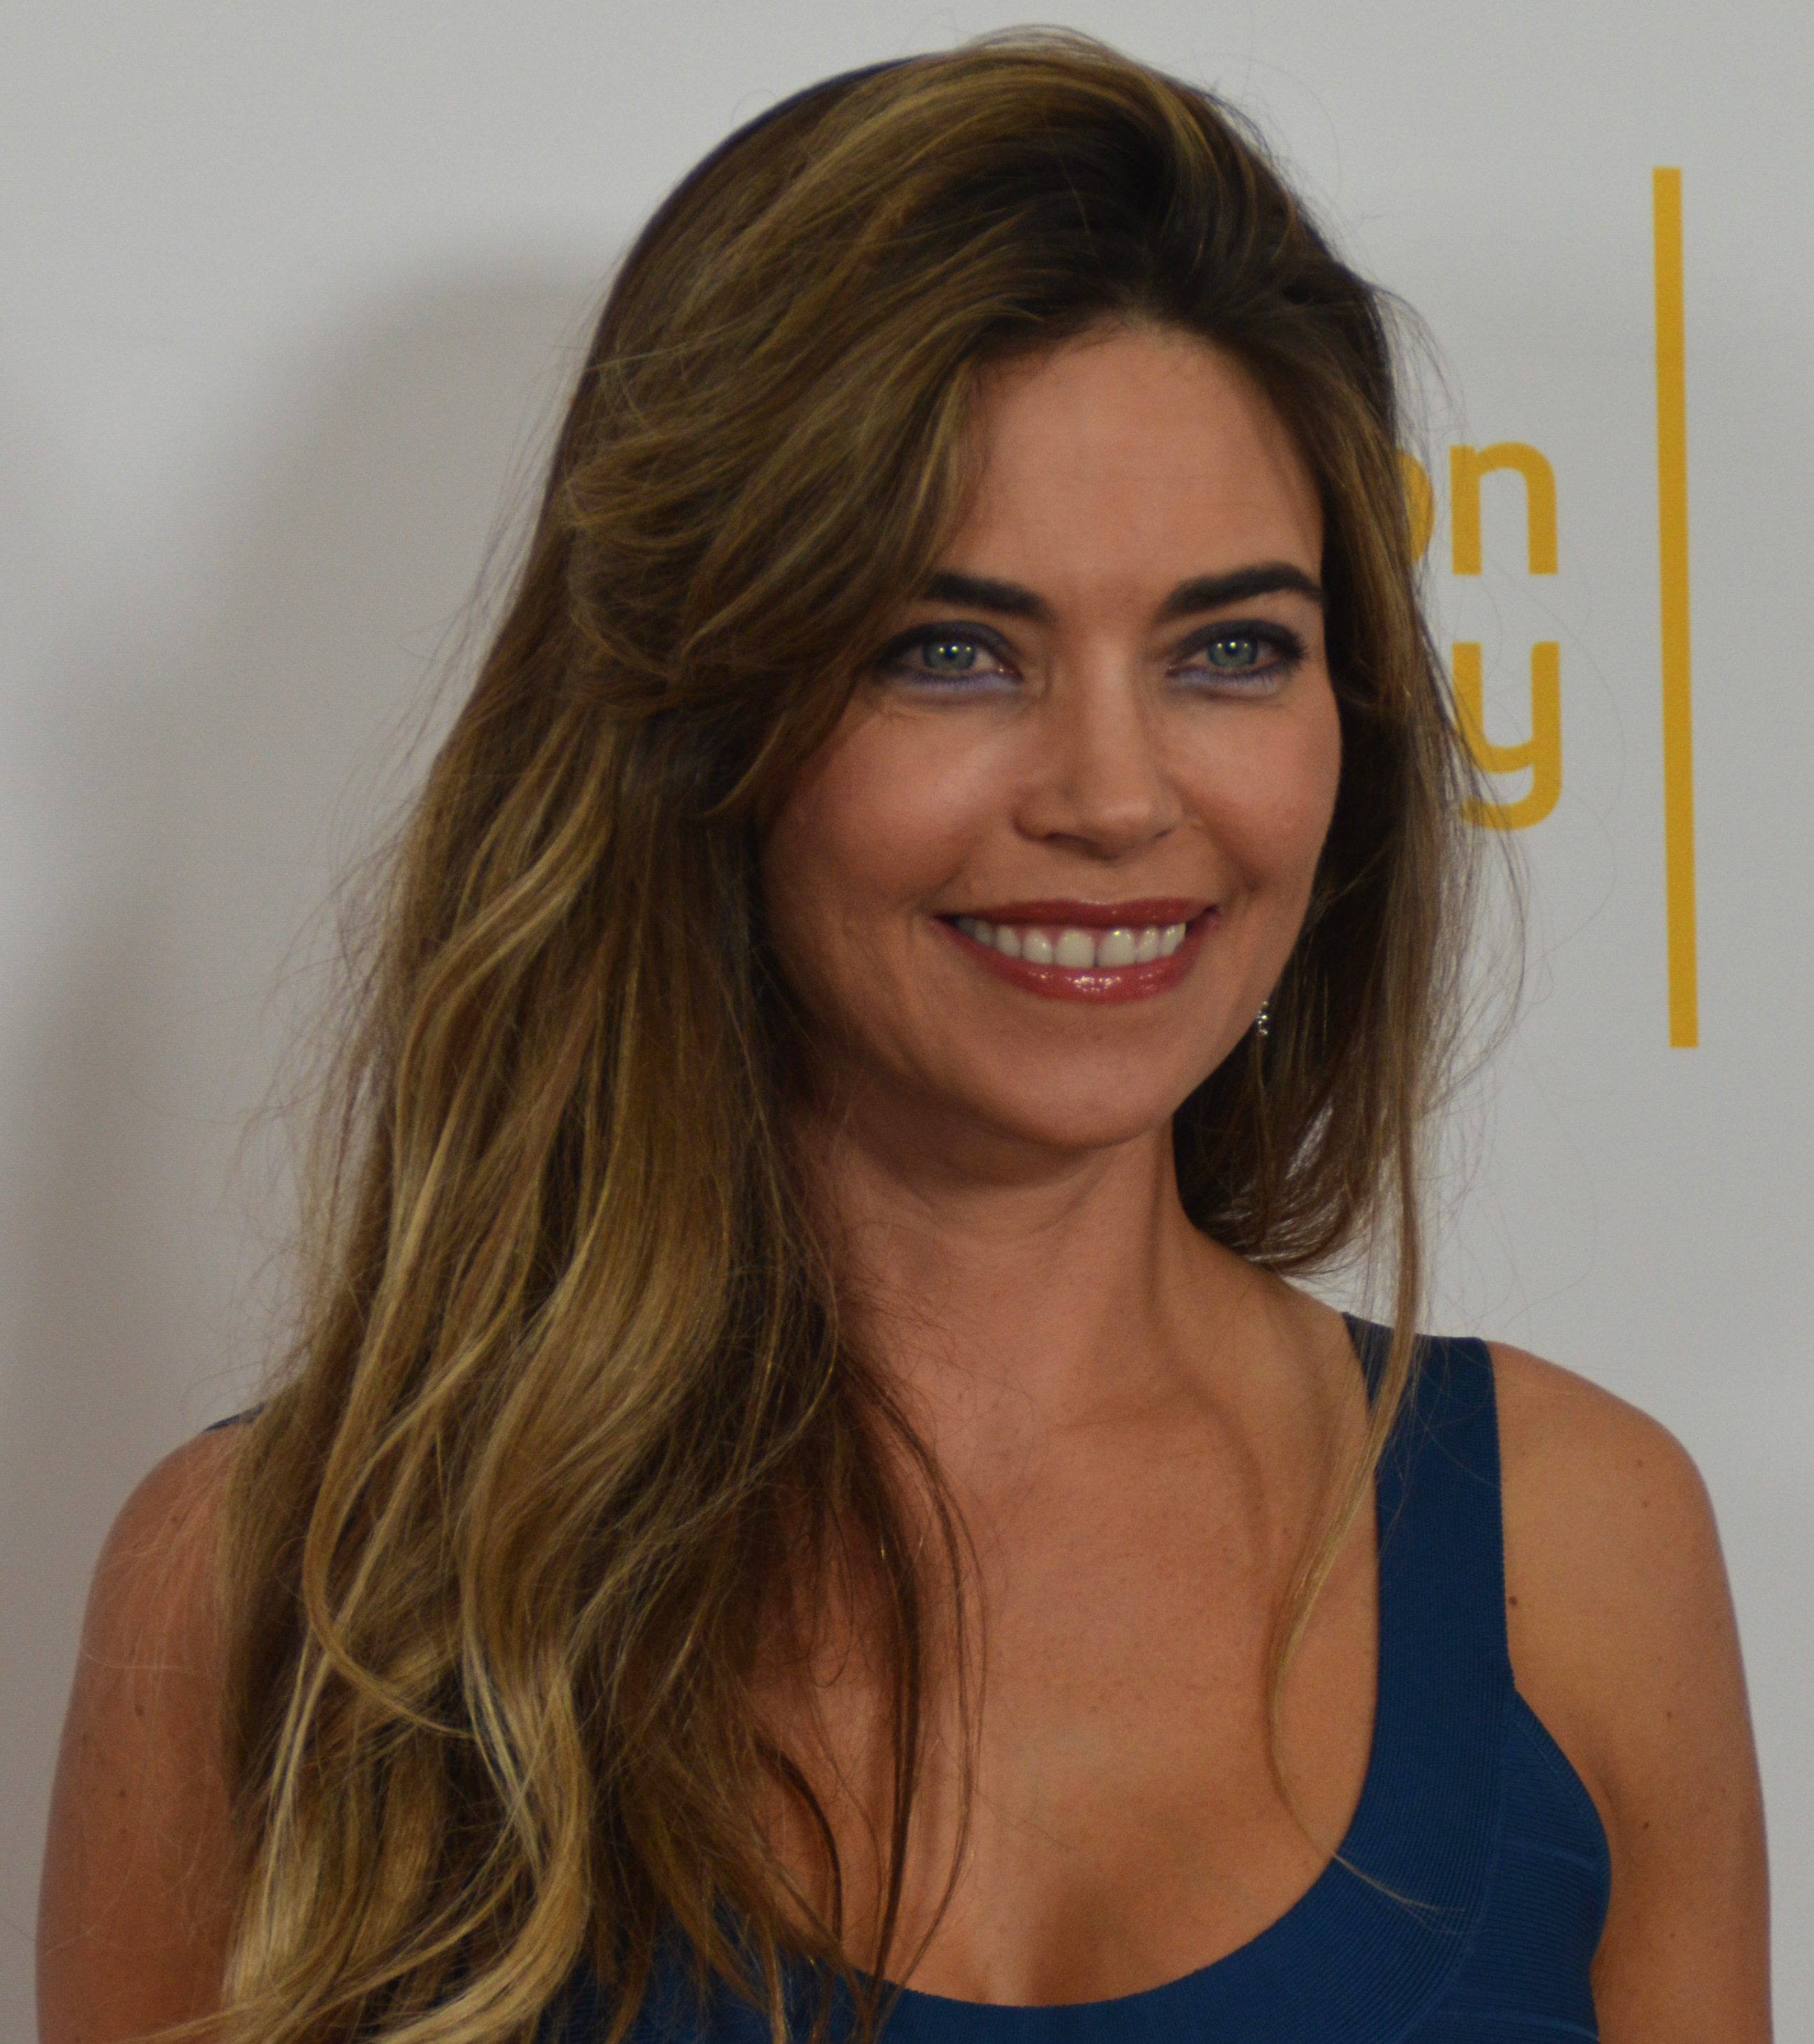 Amelia Heinle nudes (74 photos), Tits, Cleavage, Instagram, butt 2020